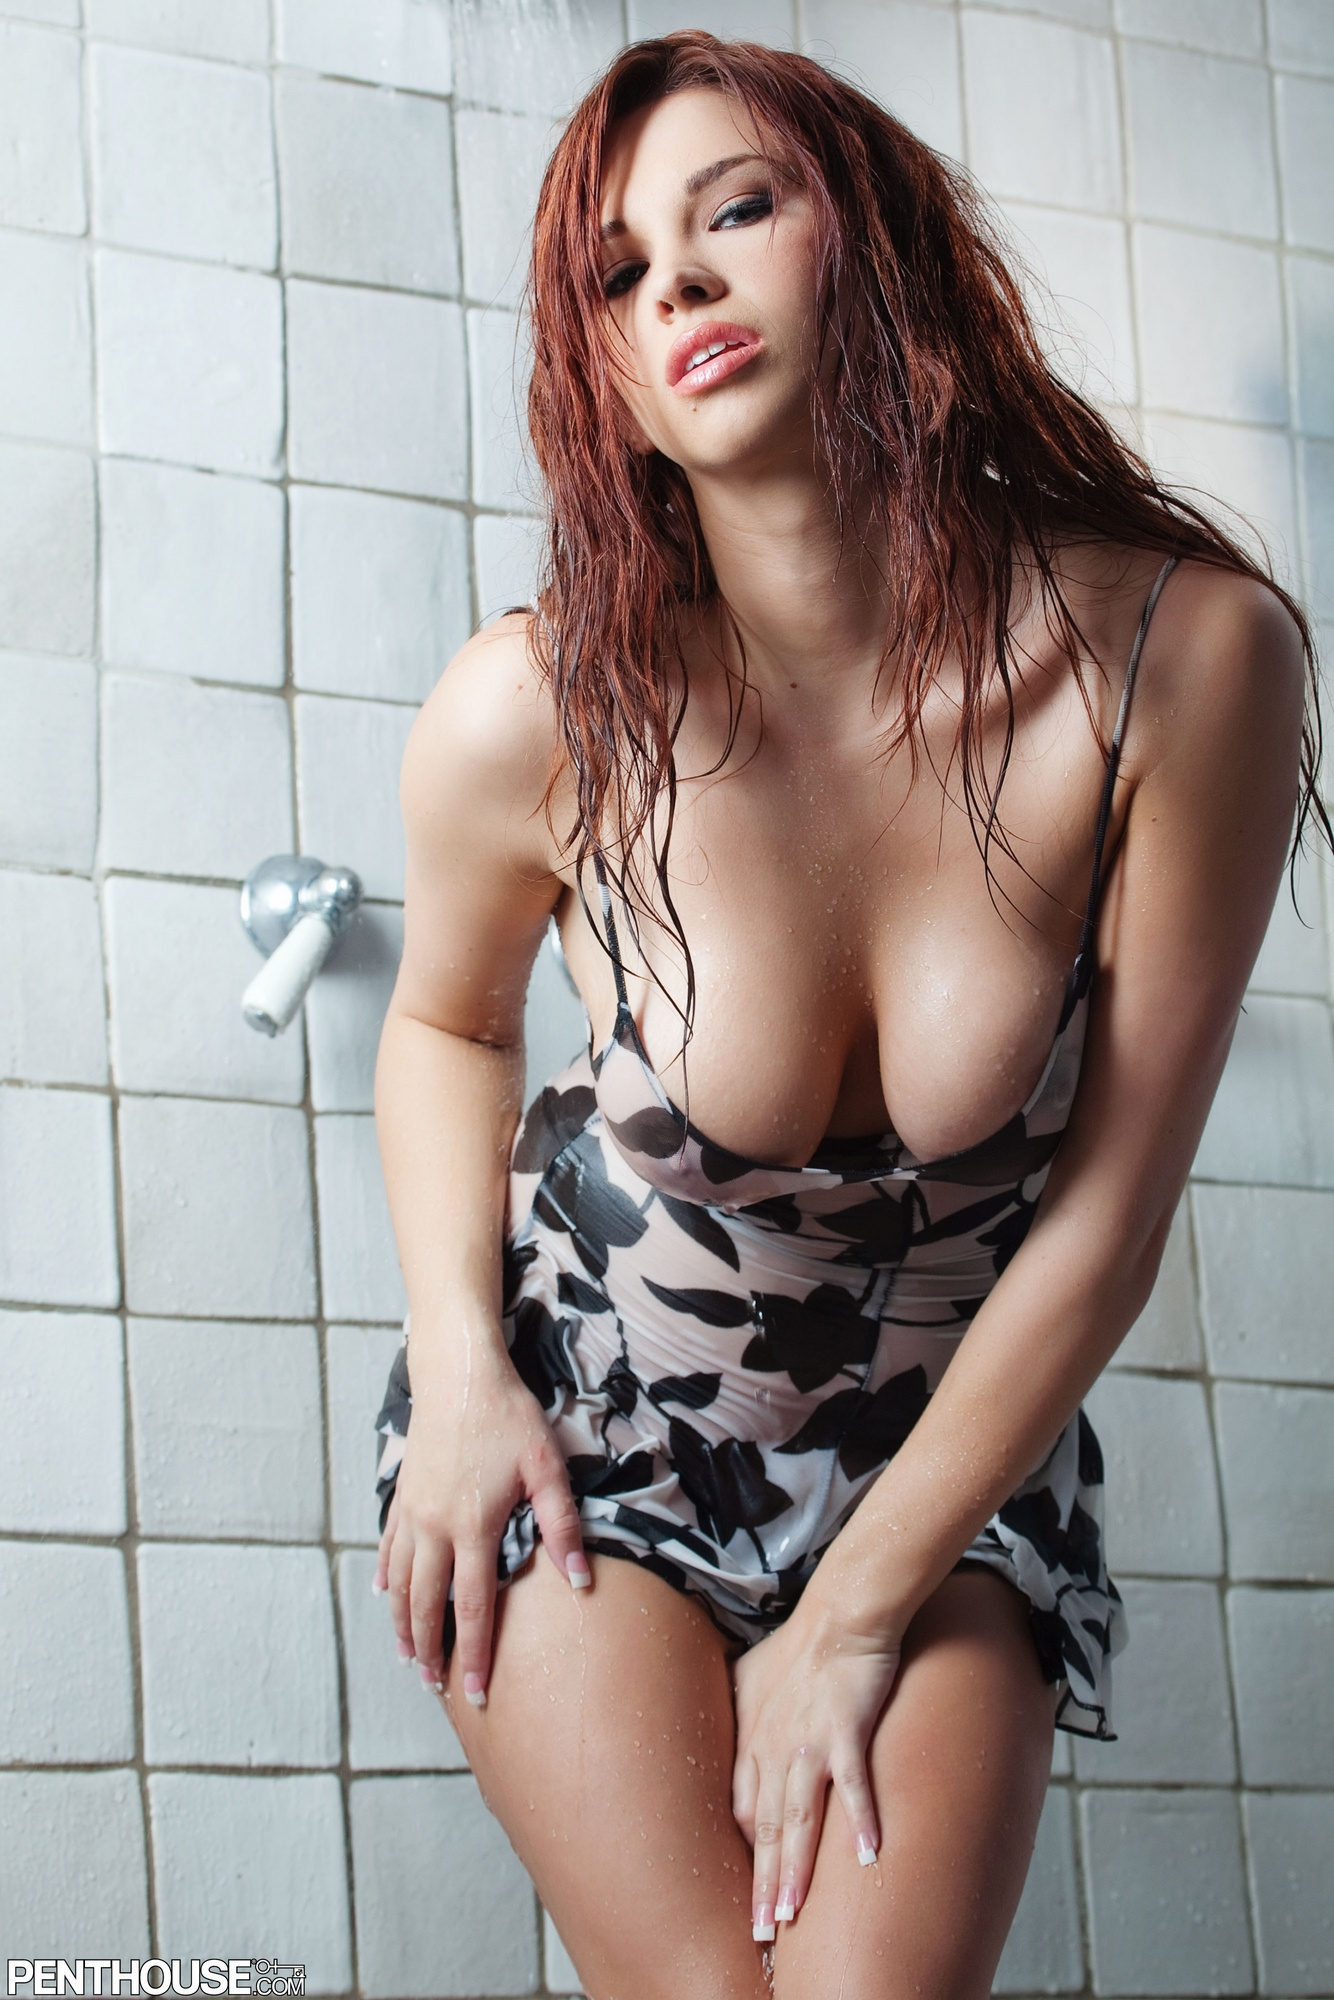 sabrina-maree-shower-wet-tits-naked-penthouse-23